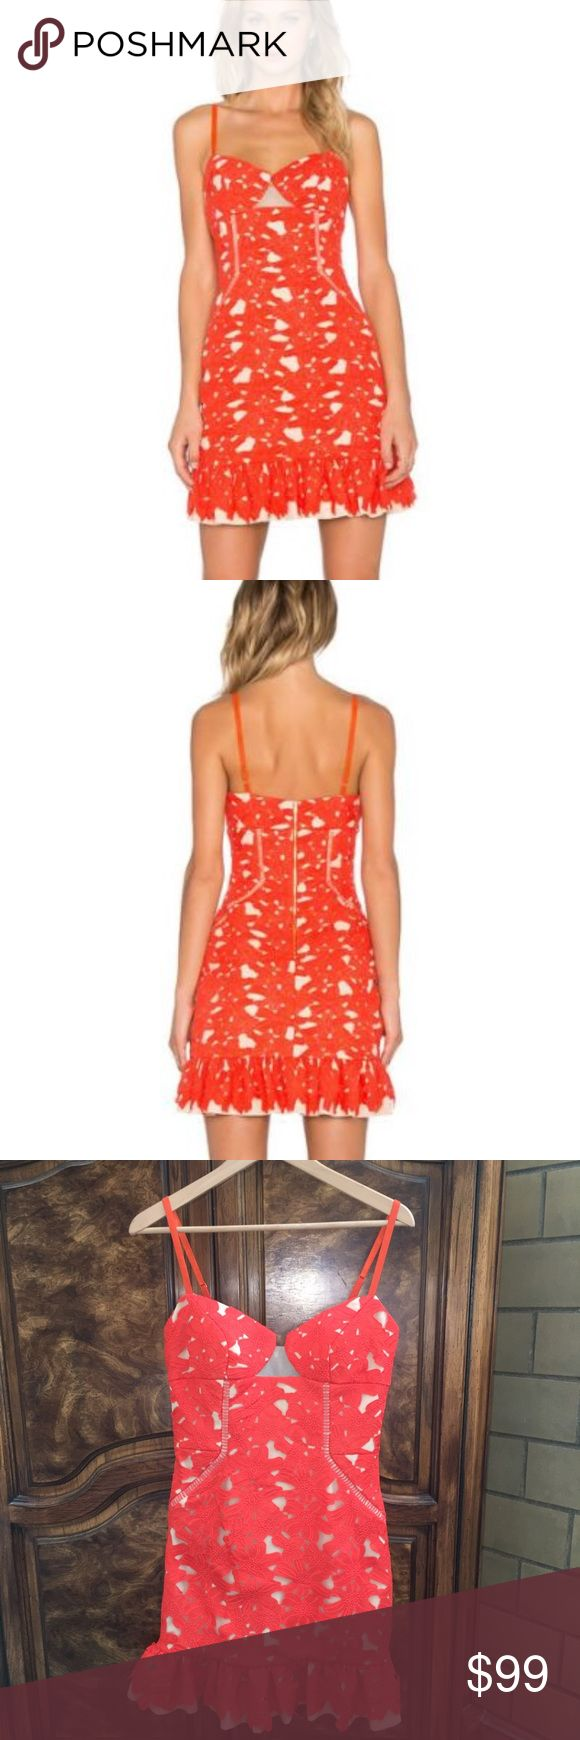 THREE FLOOR  Orange Crocheted Mini Dress This dress is brand new with tags.  This piece is a beautiful crocheted orange pattern over a cream colored lining. It is a size 4, has a back zipper and spaghetti straps. Three Floor Dresses Mini